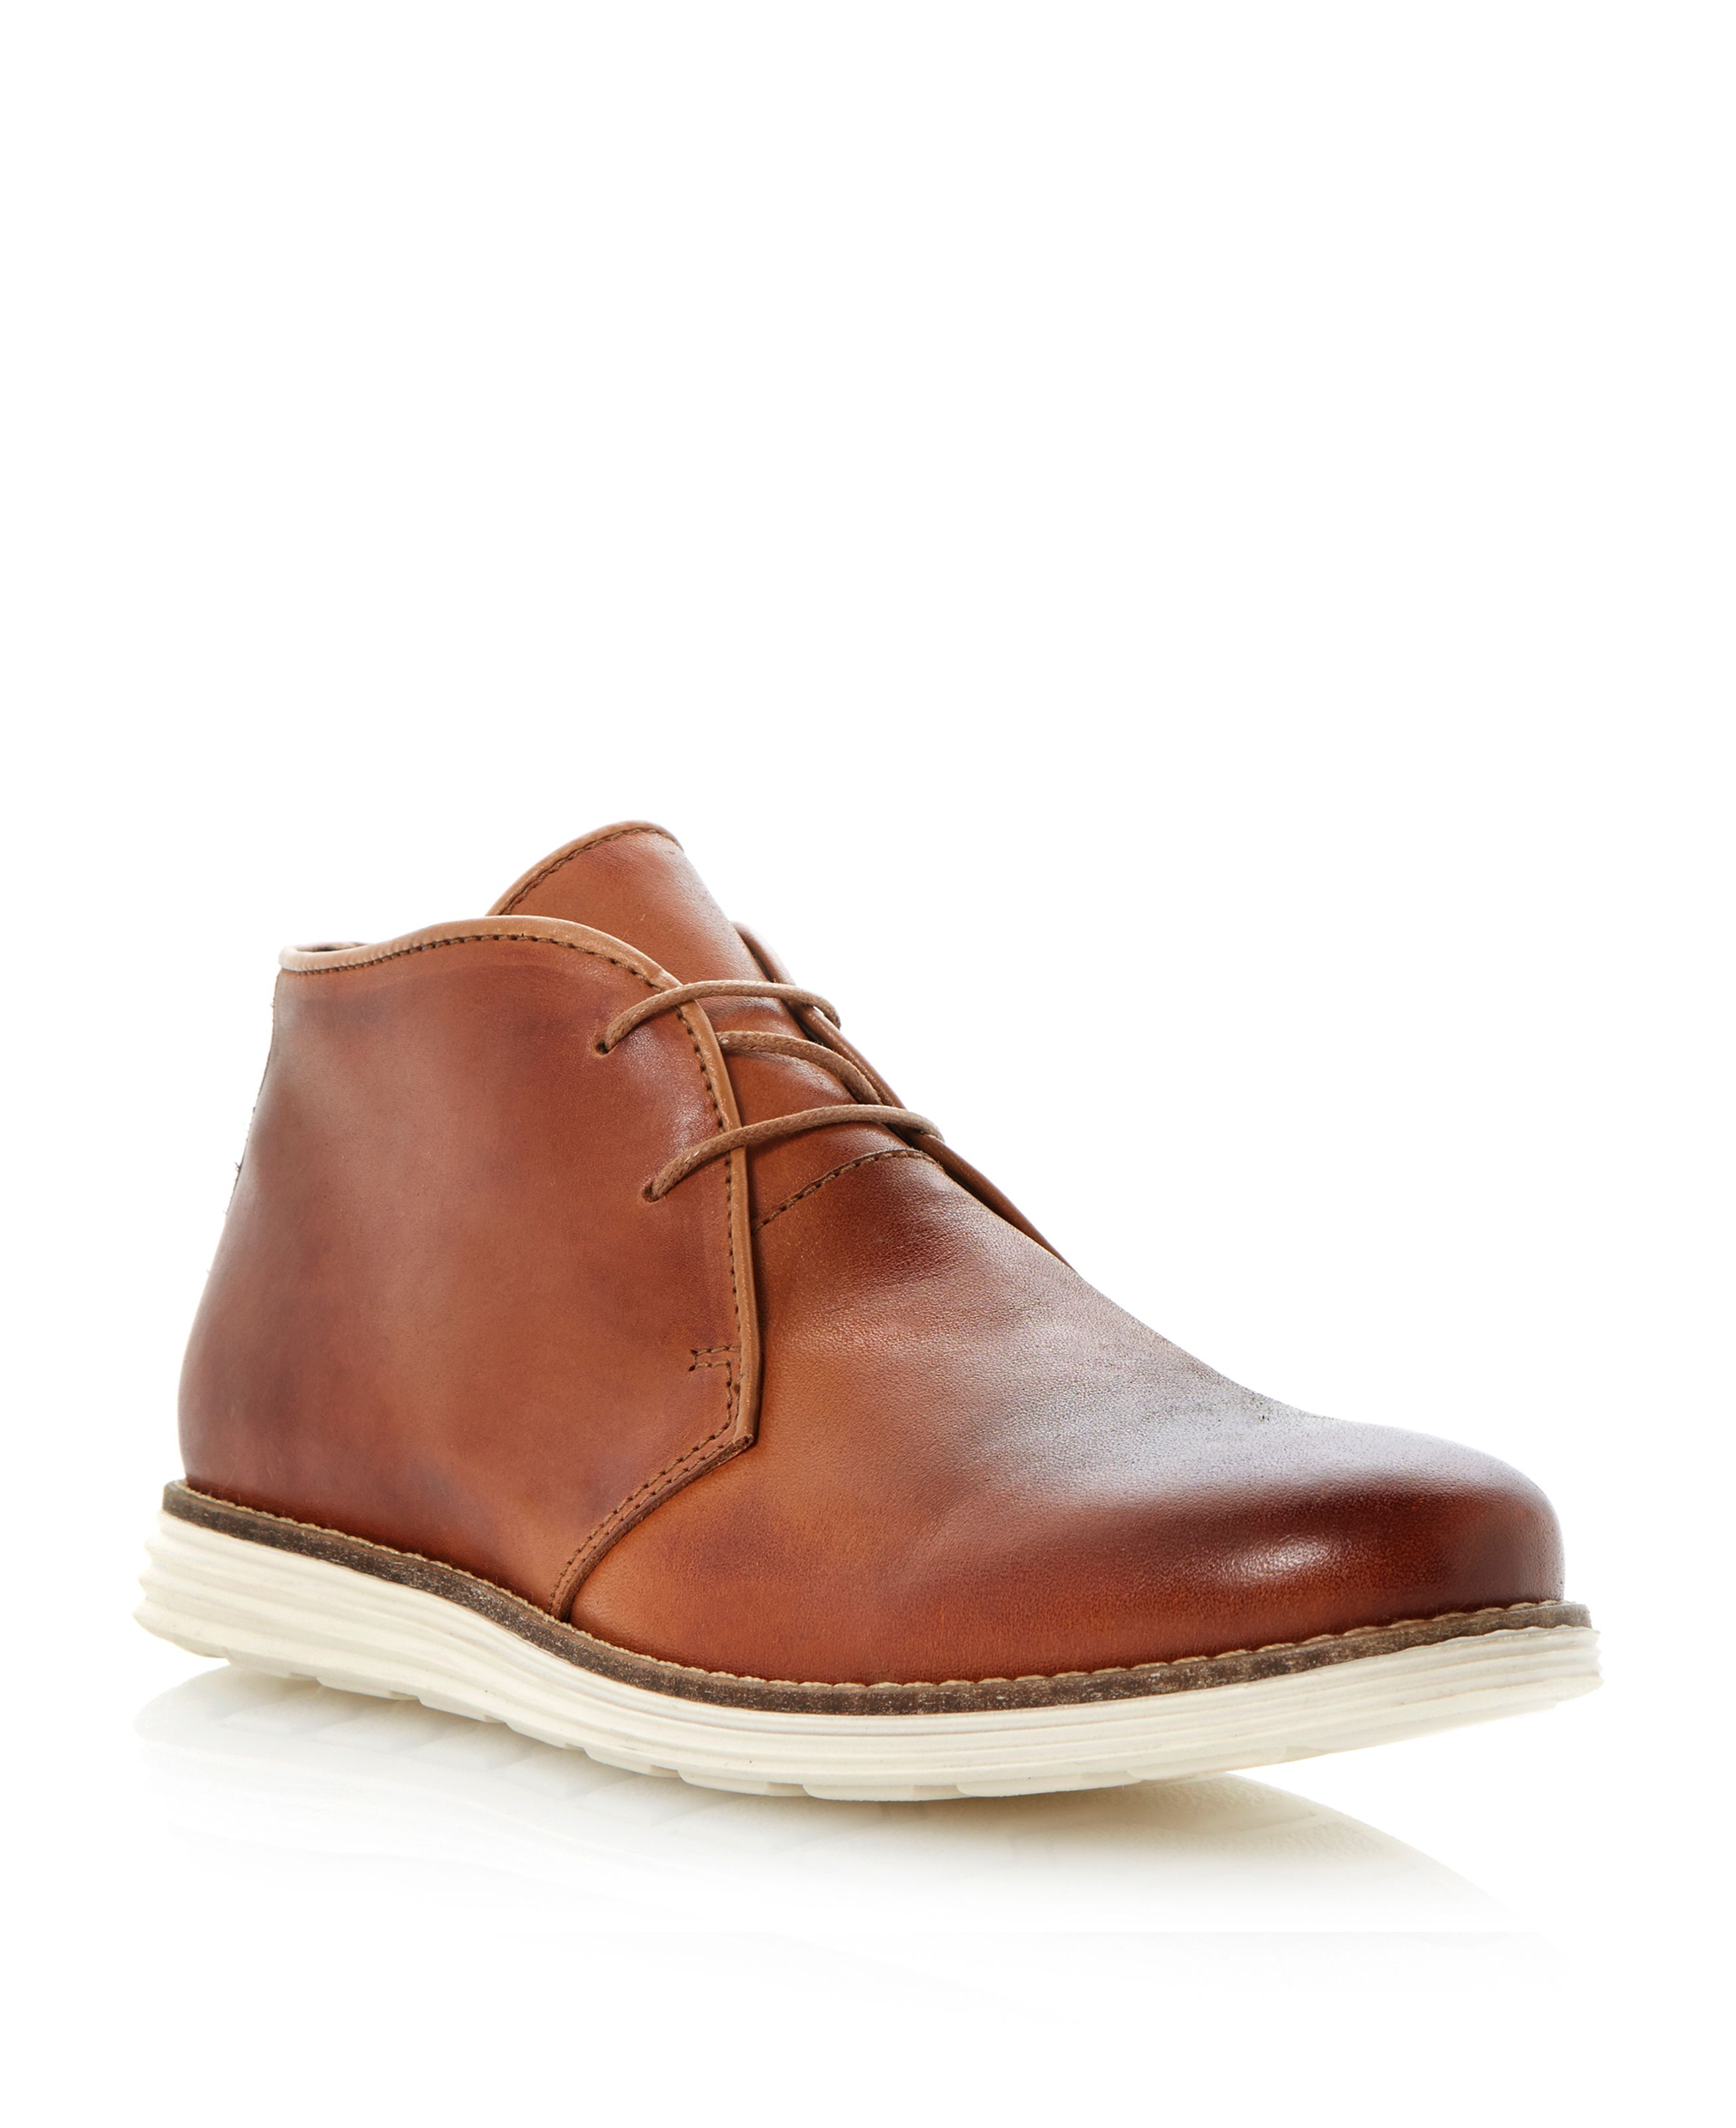 Christoff lace up sporty chukka boots